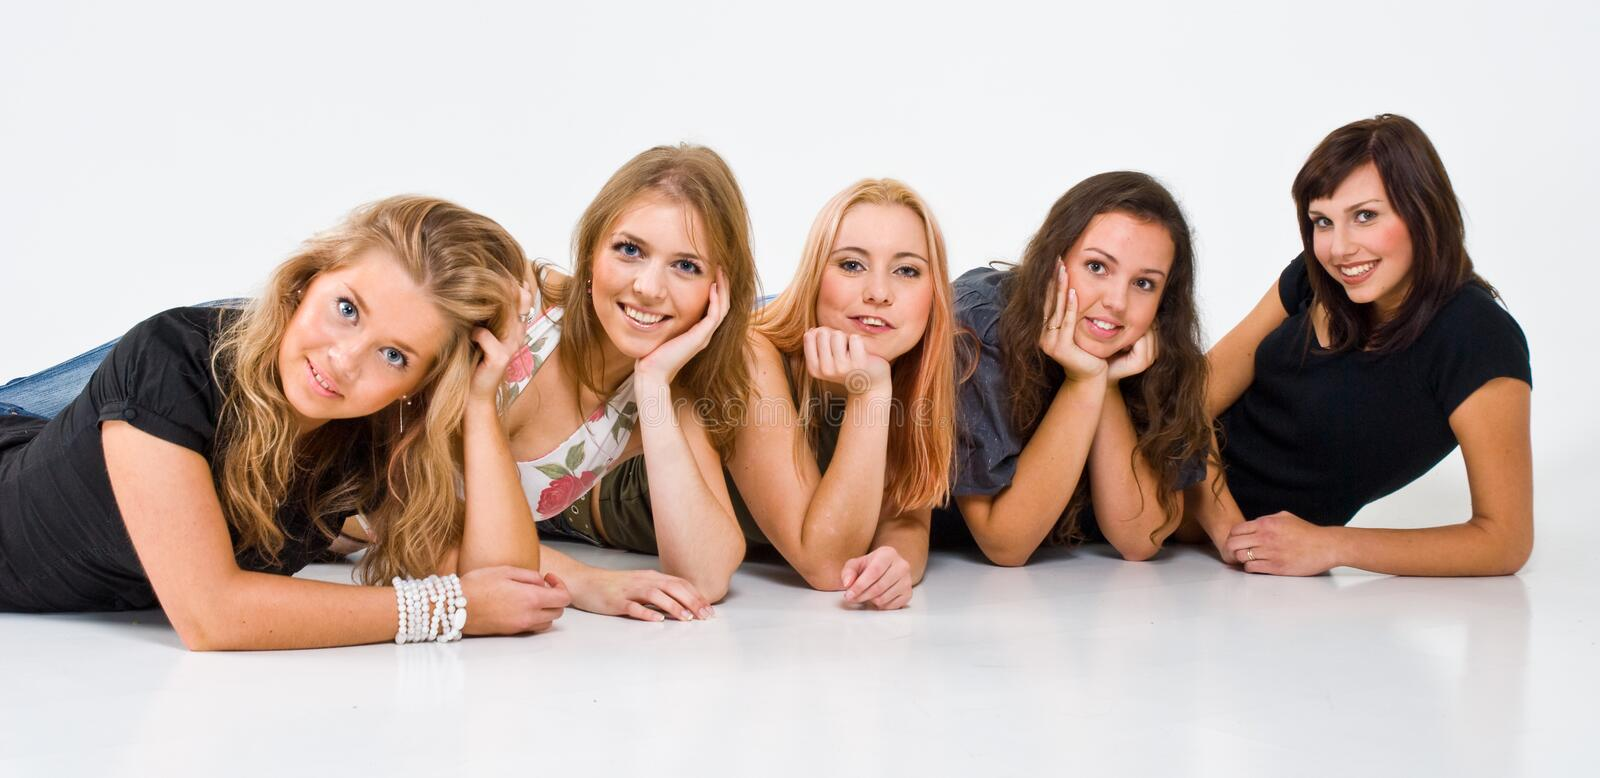 Five Women. Casual portrait of five smiling young women laying in a row, isolated on a white background. Shot in-studio